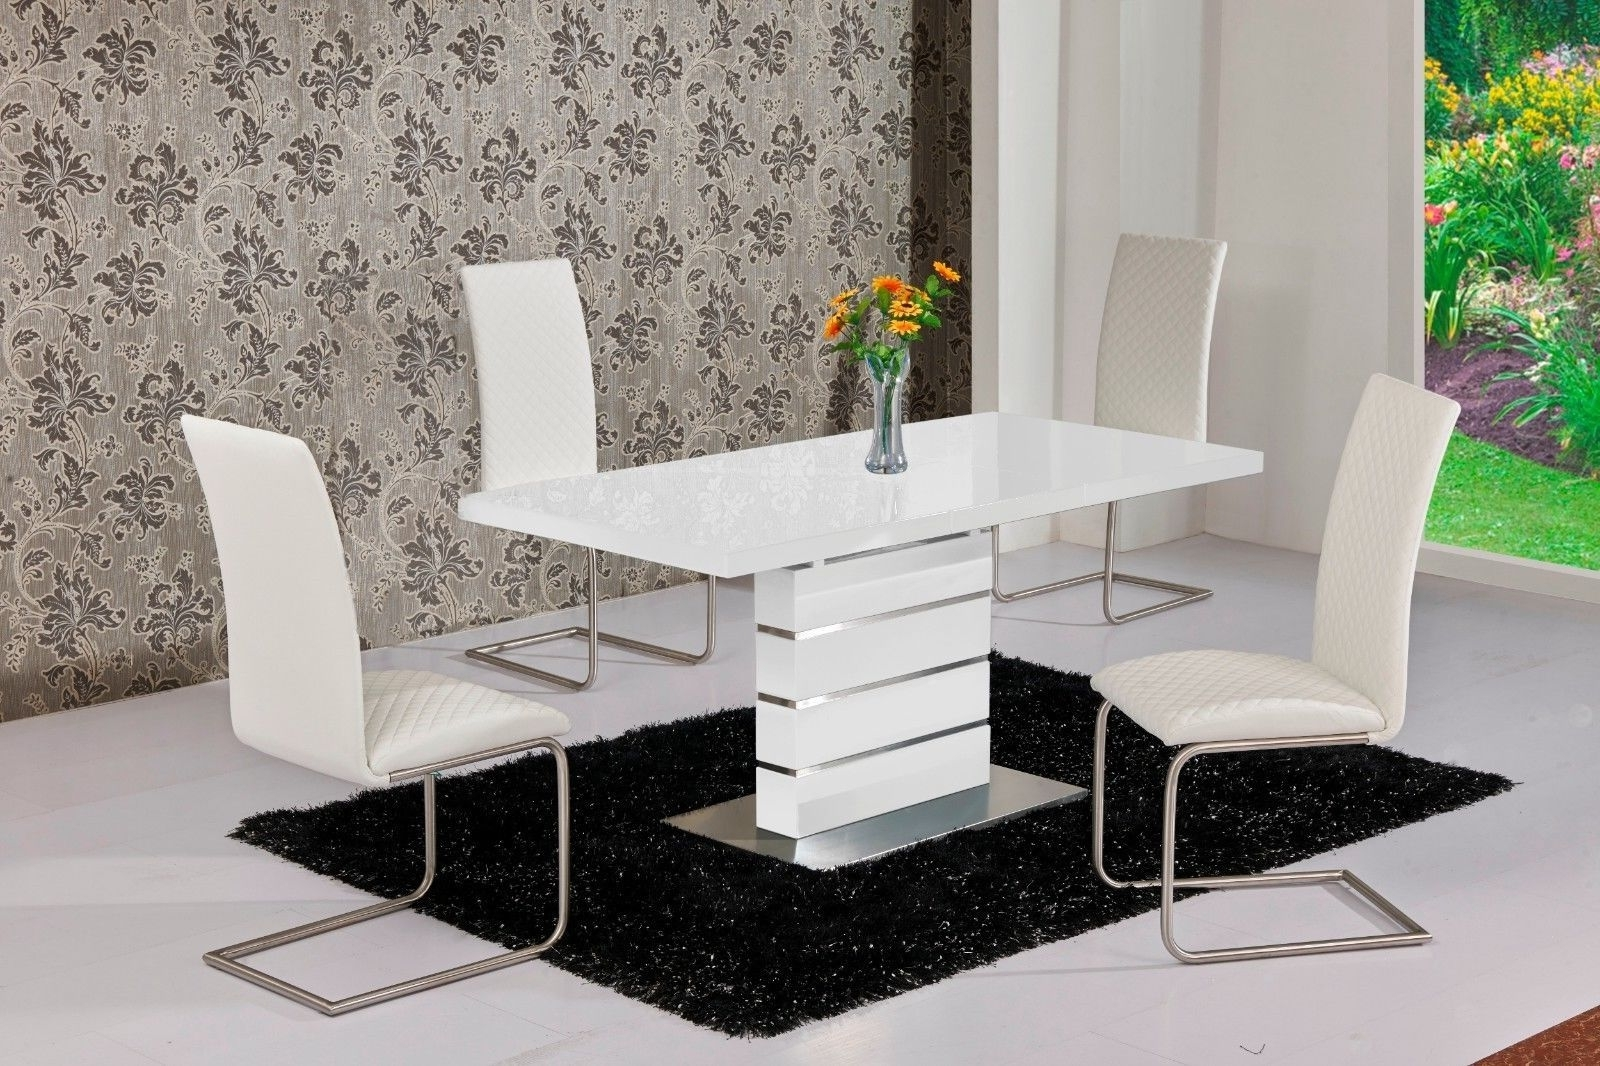 Fashionable White High Gloss Dining Tables With Regard To Mace High Gloss Extending 120 160 Dining Table & Chair Set – White (View 6 of 25)